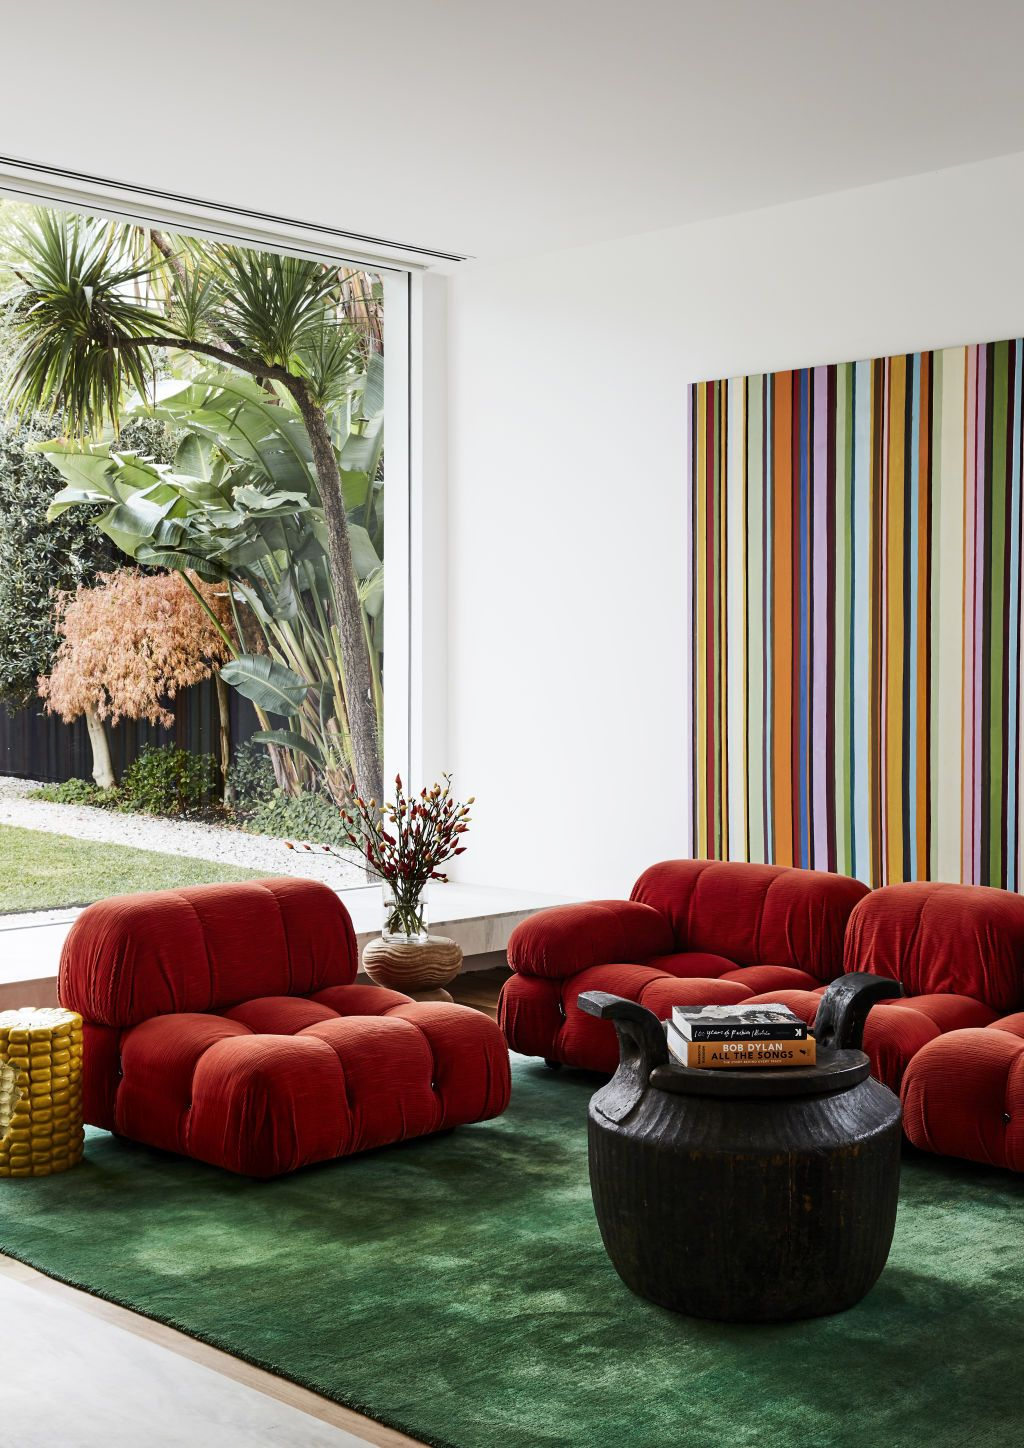 51 Red Living Rooms With Tips And Accessories To Help You Decorate Yours In 2020 Living Room Red Colorful Furniture Living Room Red Furniture Living Room #red #living #room #accessories